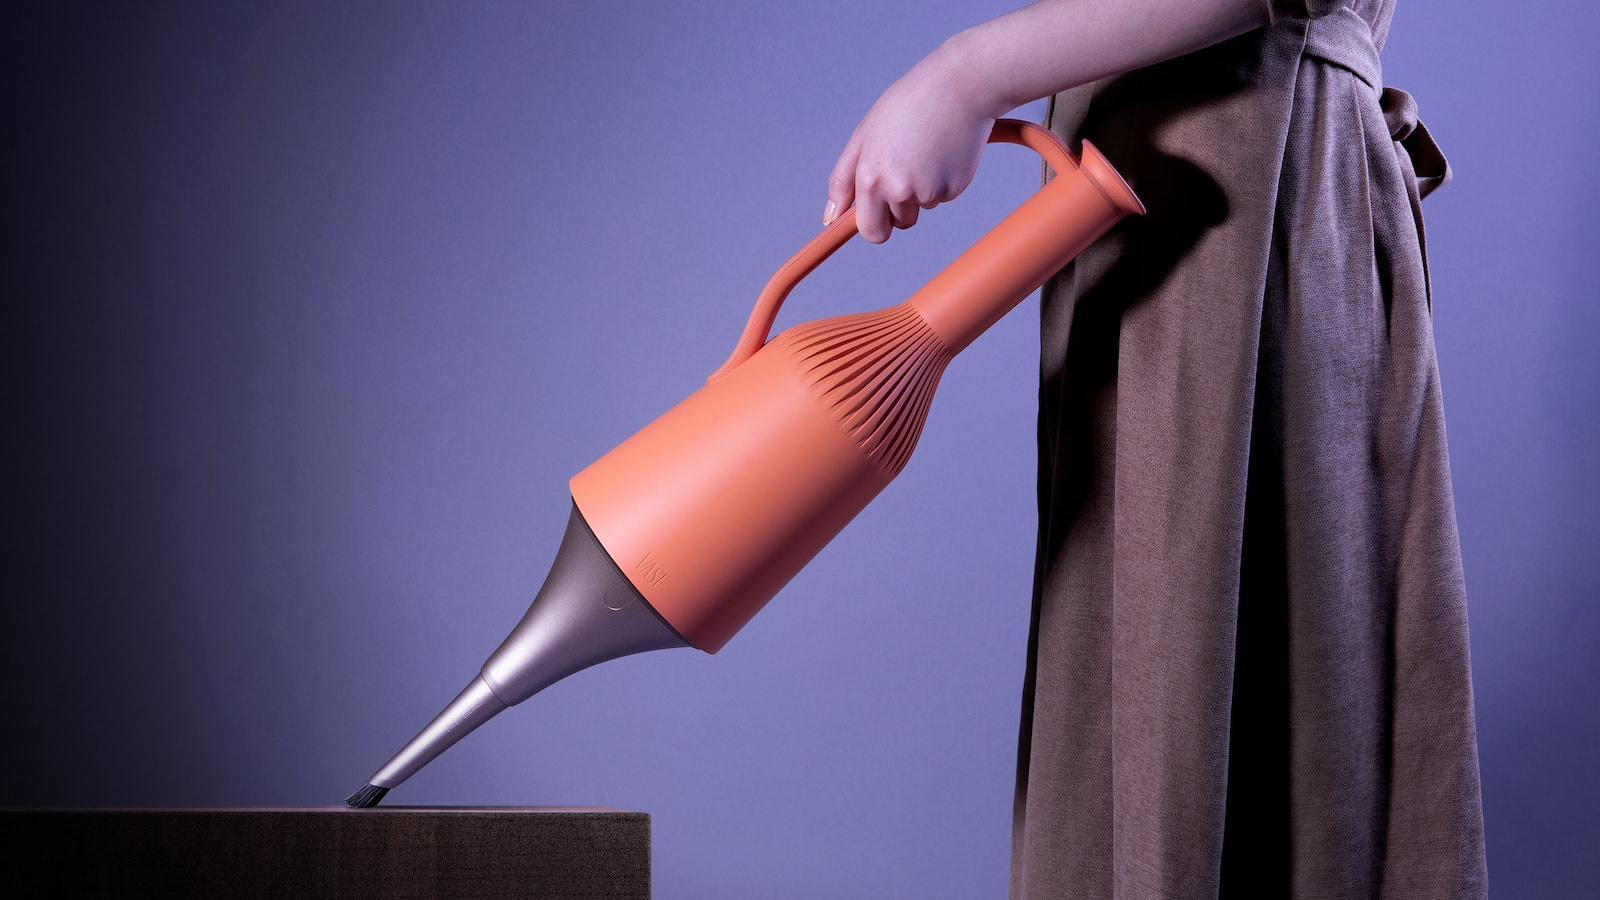 10 Unique product designs you have to see